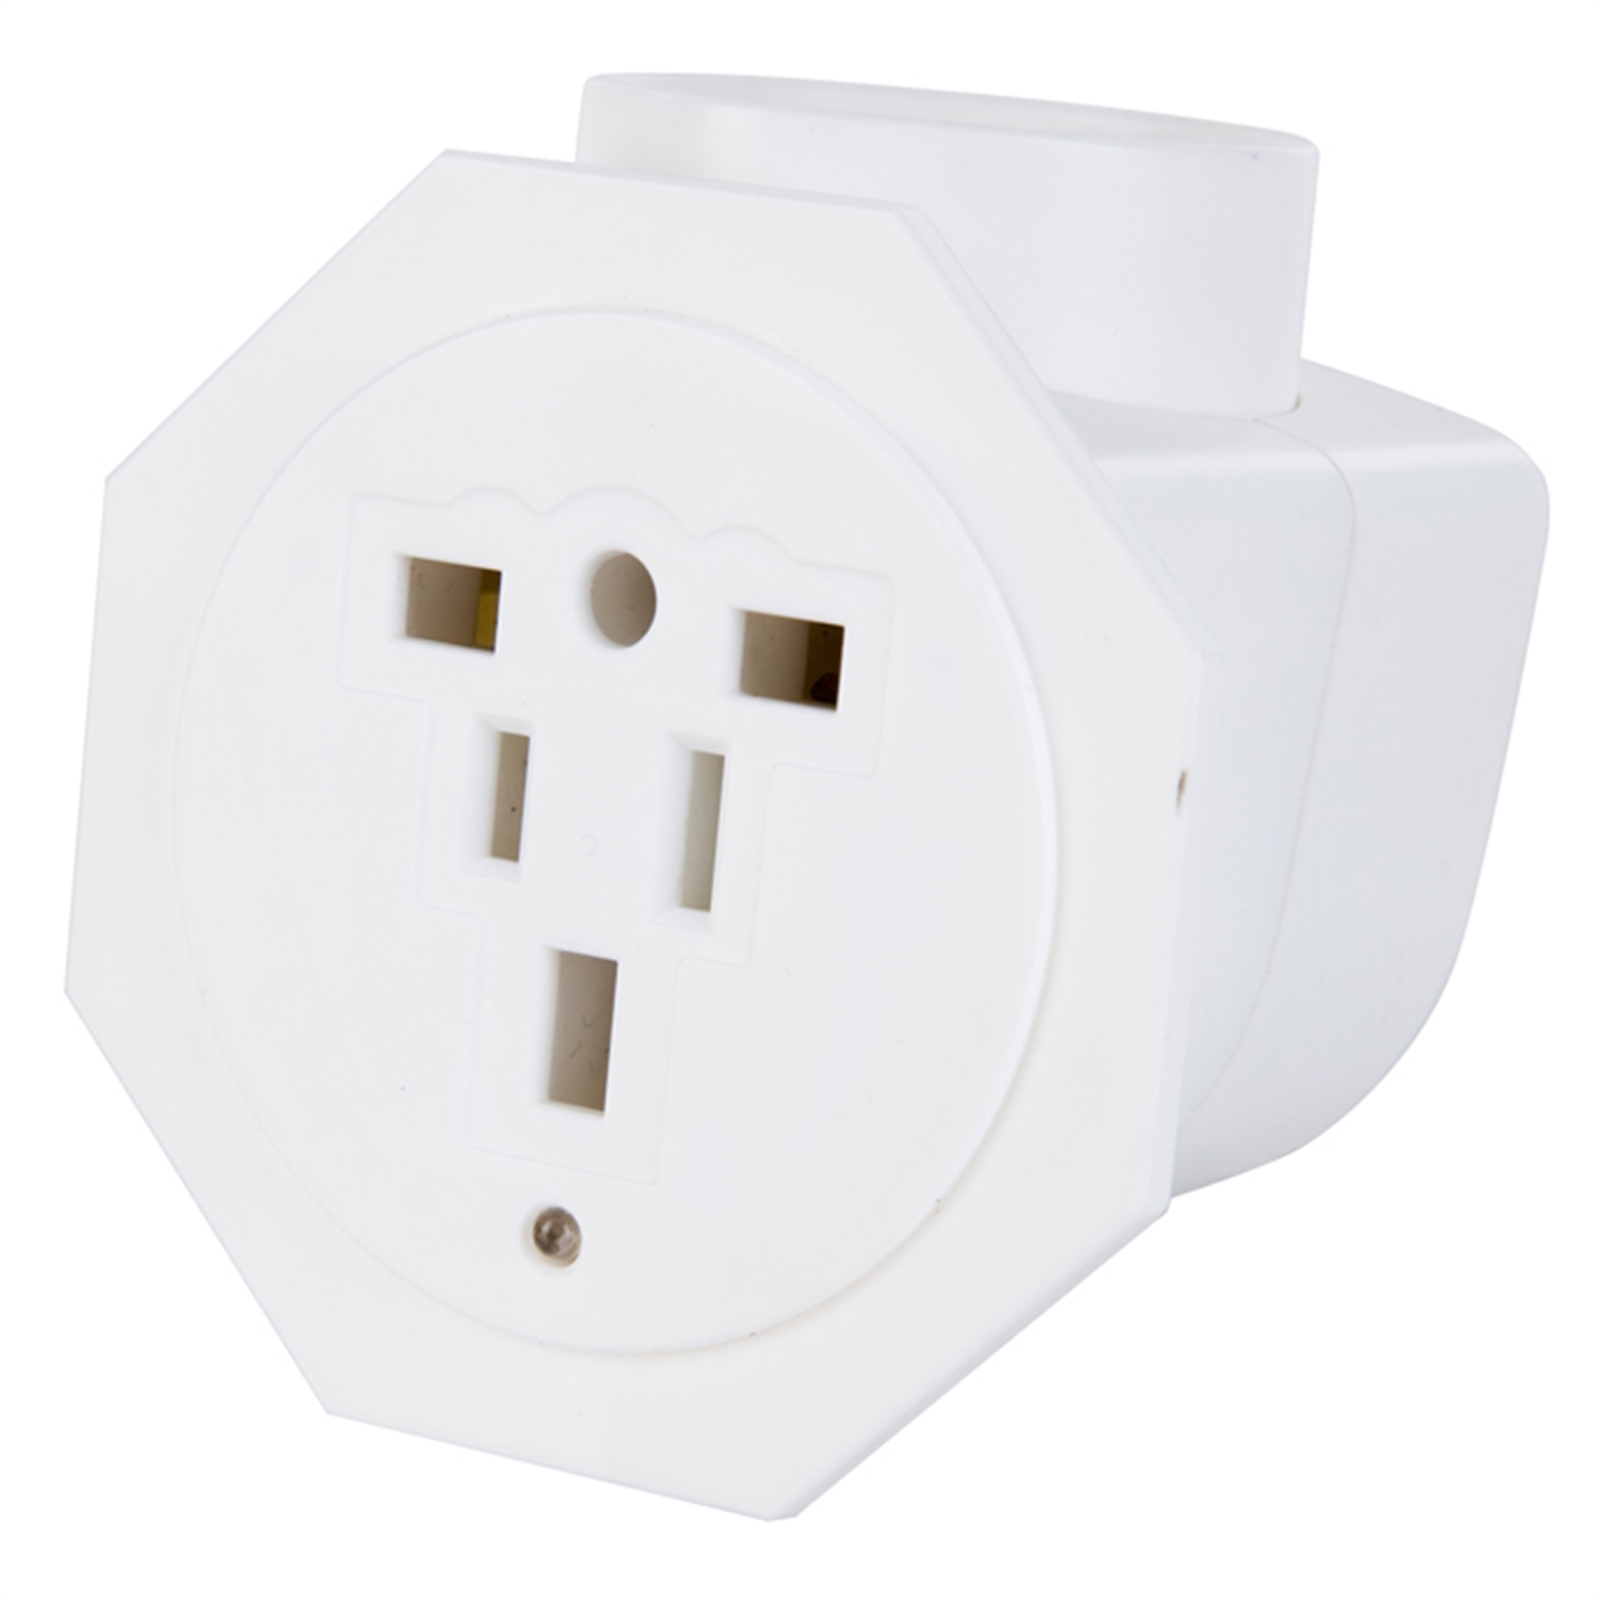 Jackson Inbound Travel Adaptor For Incoming Tourists to Australia and  New Zealand